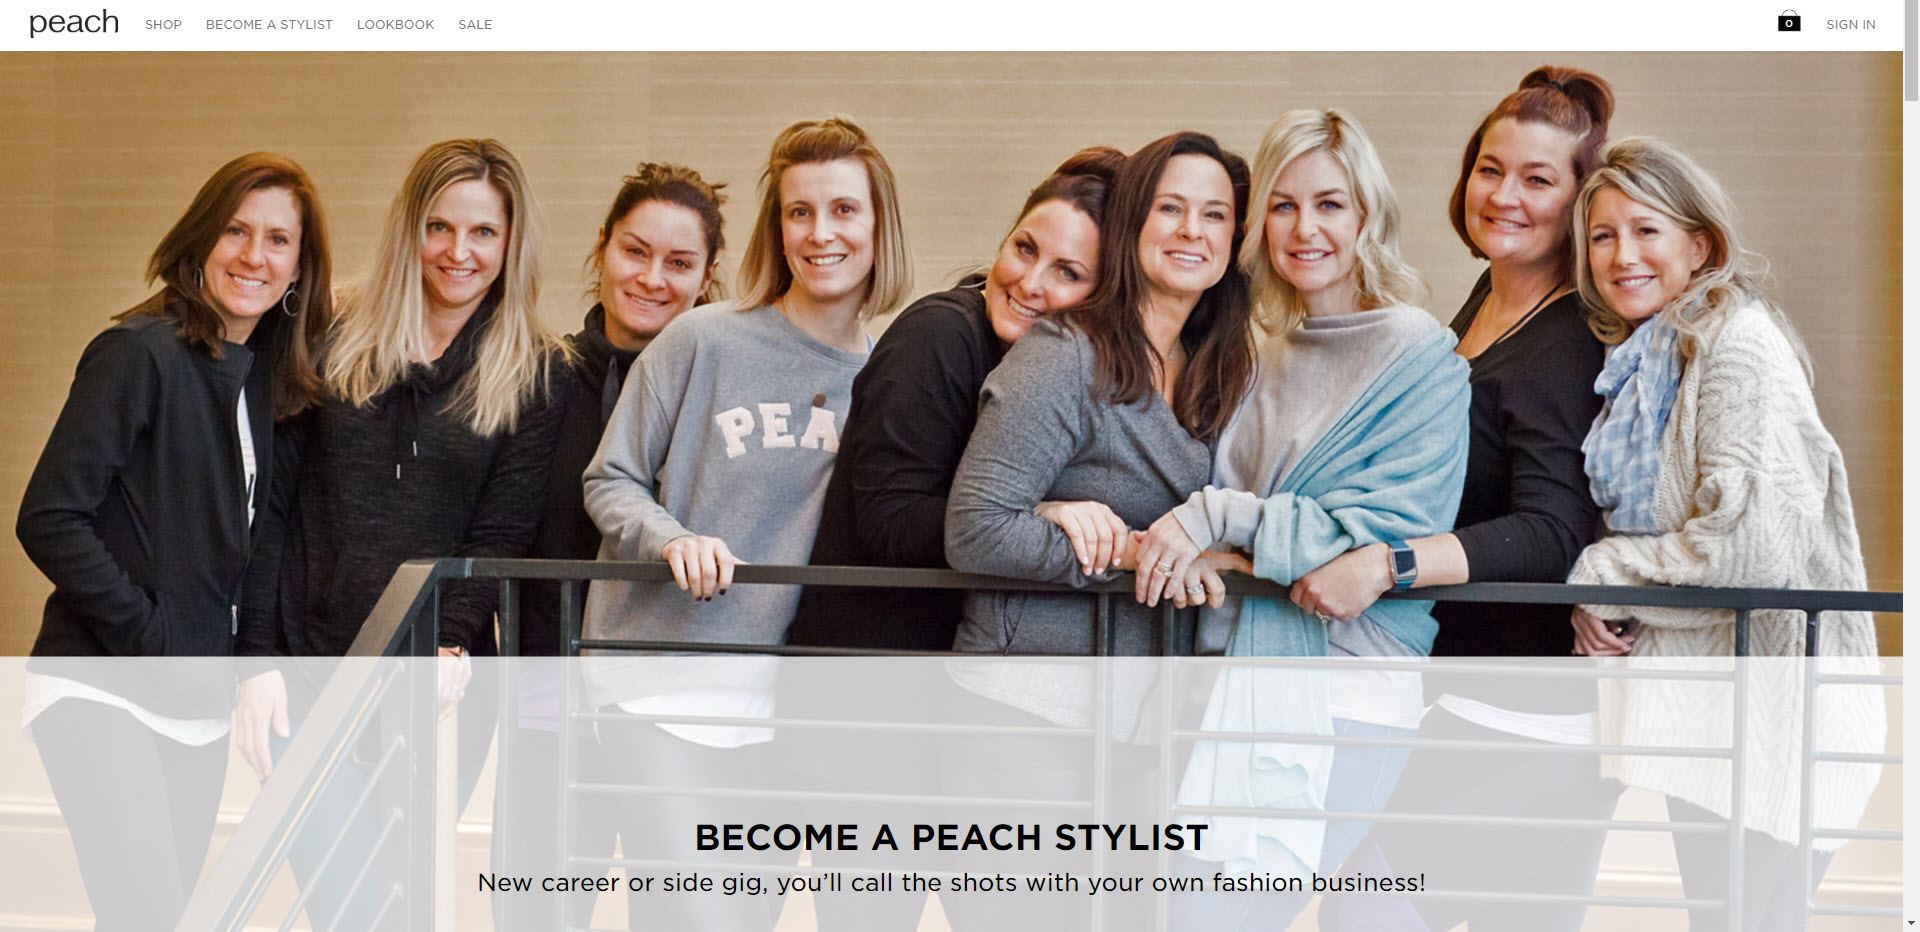 Peach mlm review - Opportunity